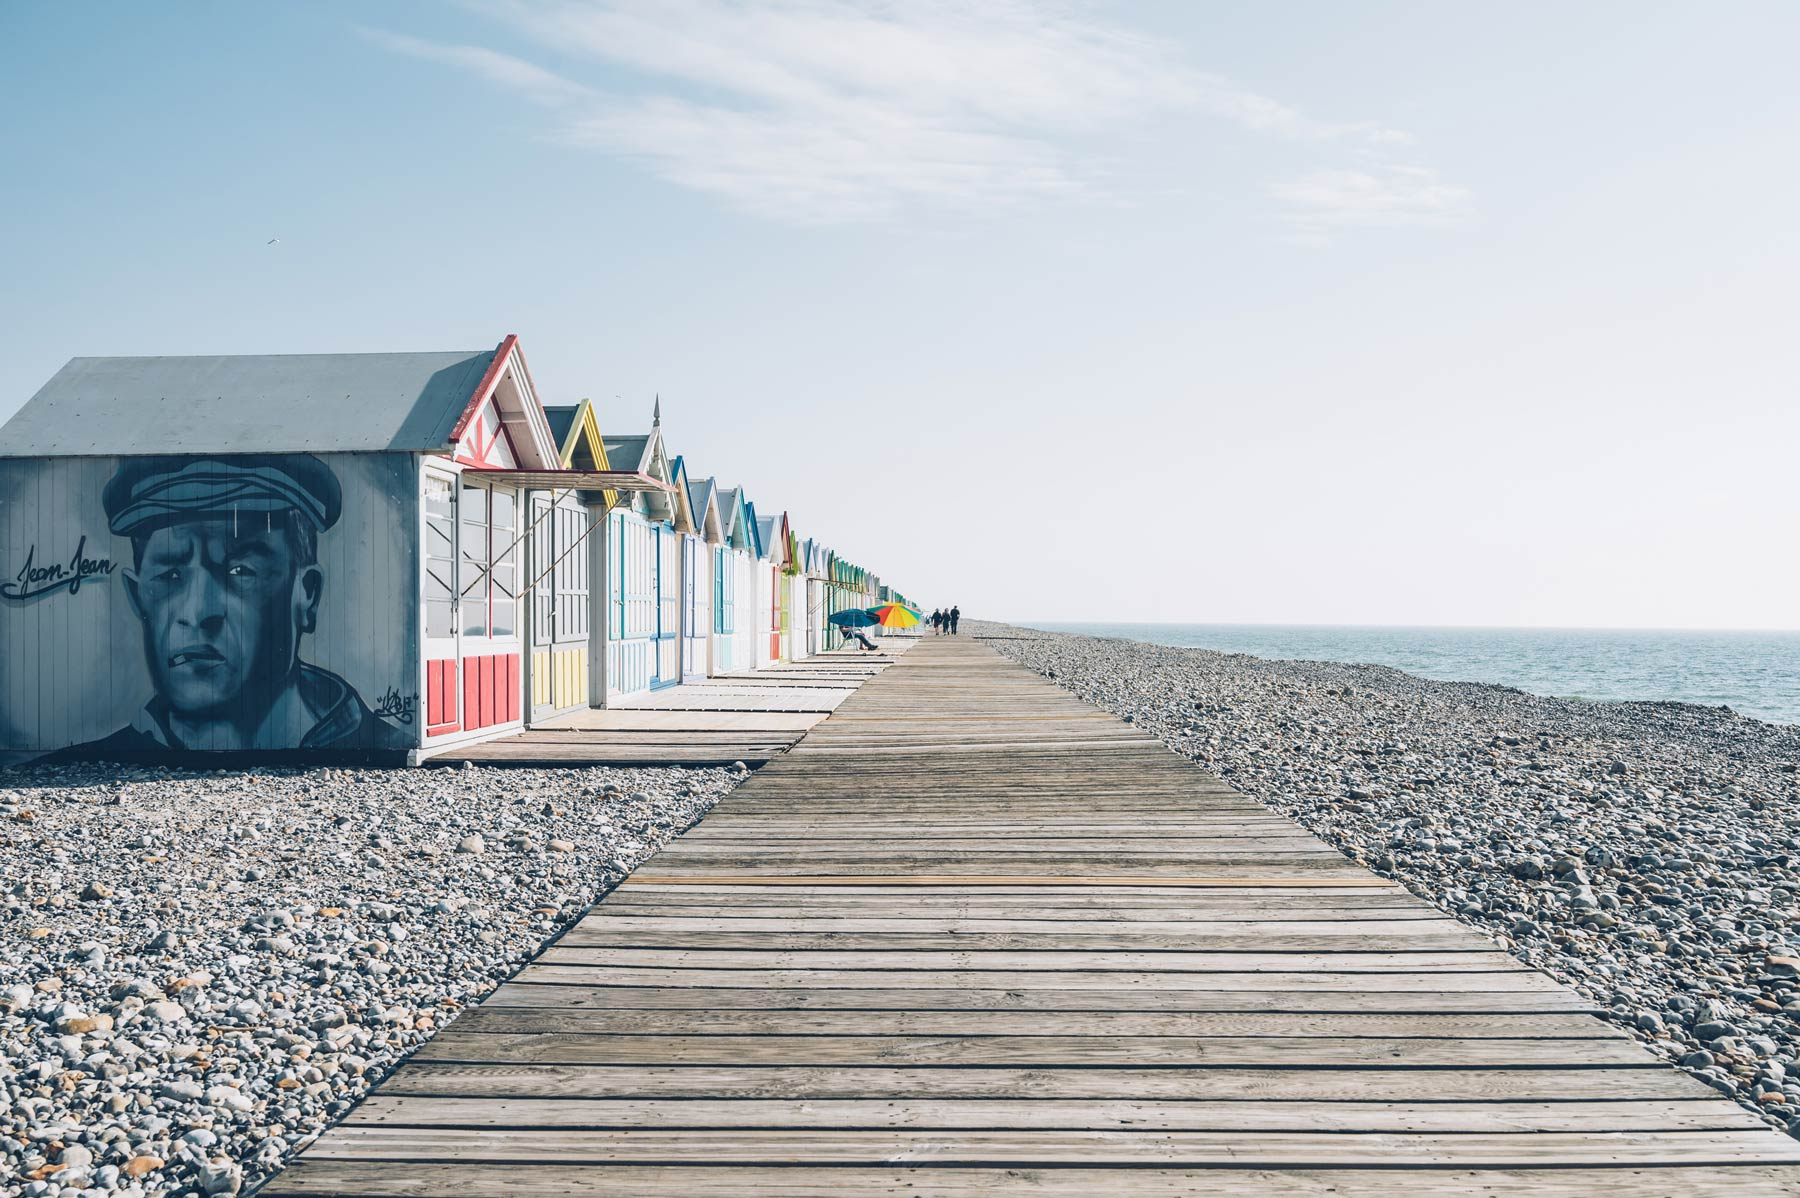 Cayeux sur Mer, Somme, Picardie